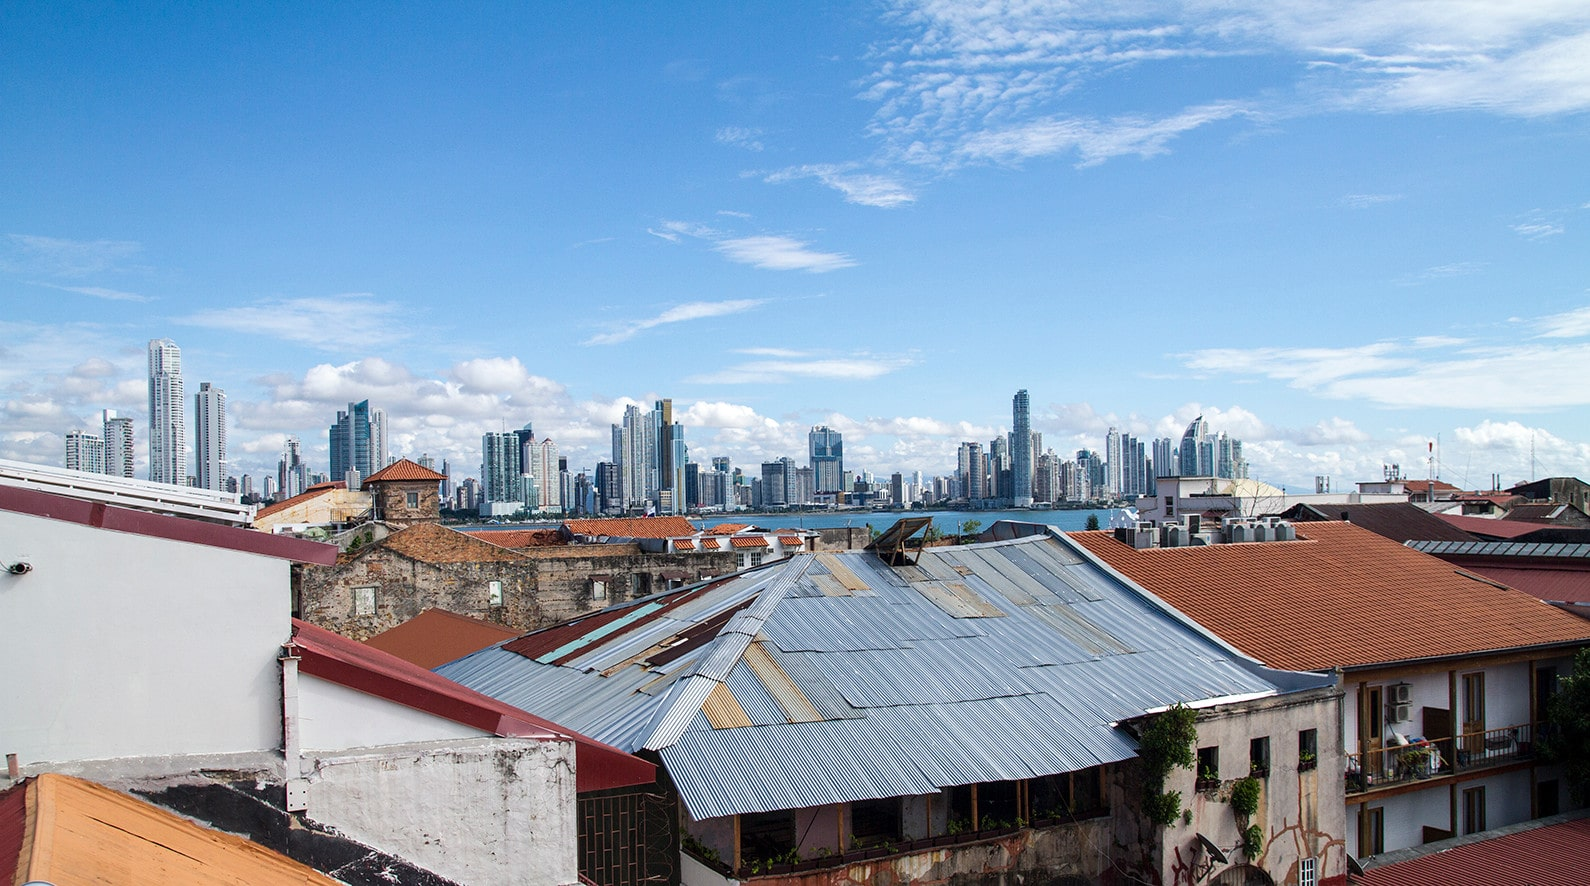 Penthouse rooms at Magnolia Inn have views of the skyline of Panama City